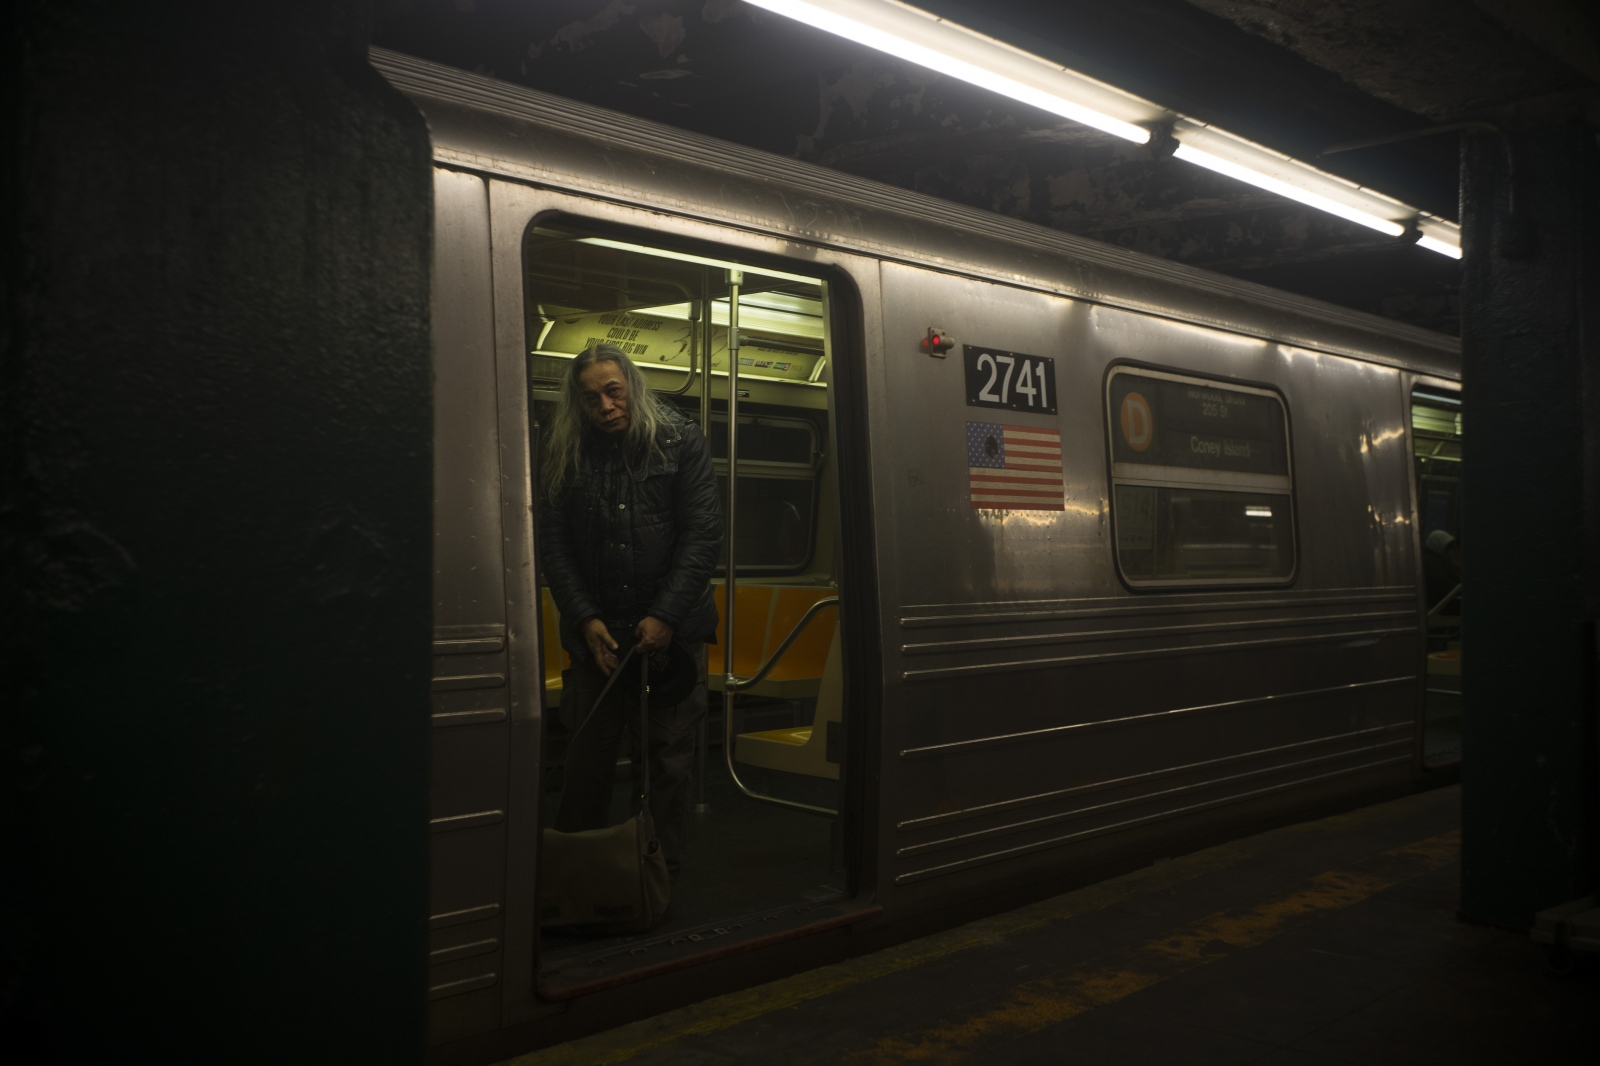 Lex spends every night riding on the subway. Every hour he switches trains. Lex is among 58,780 homeless people living in New York City.